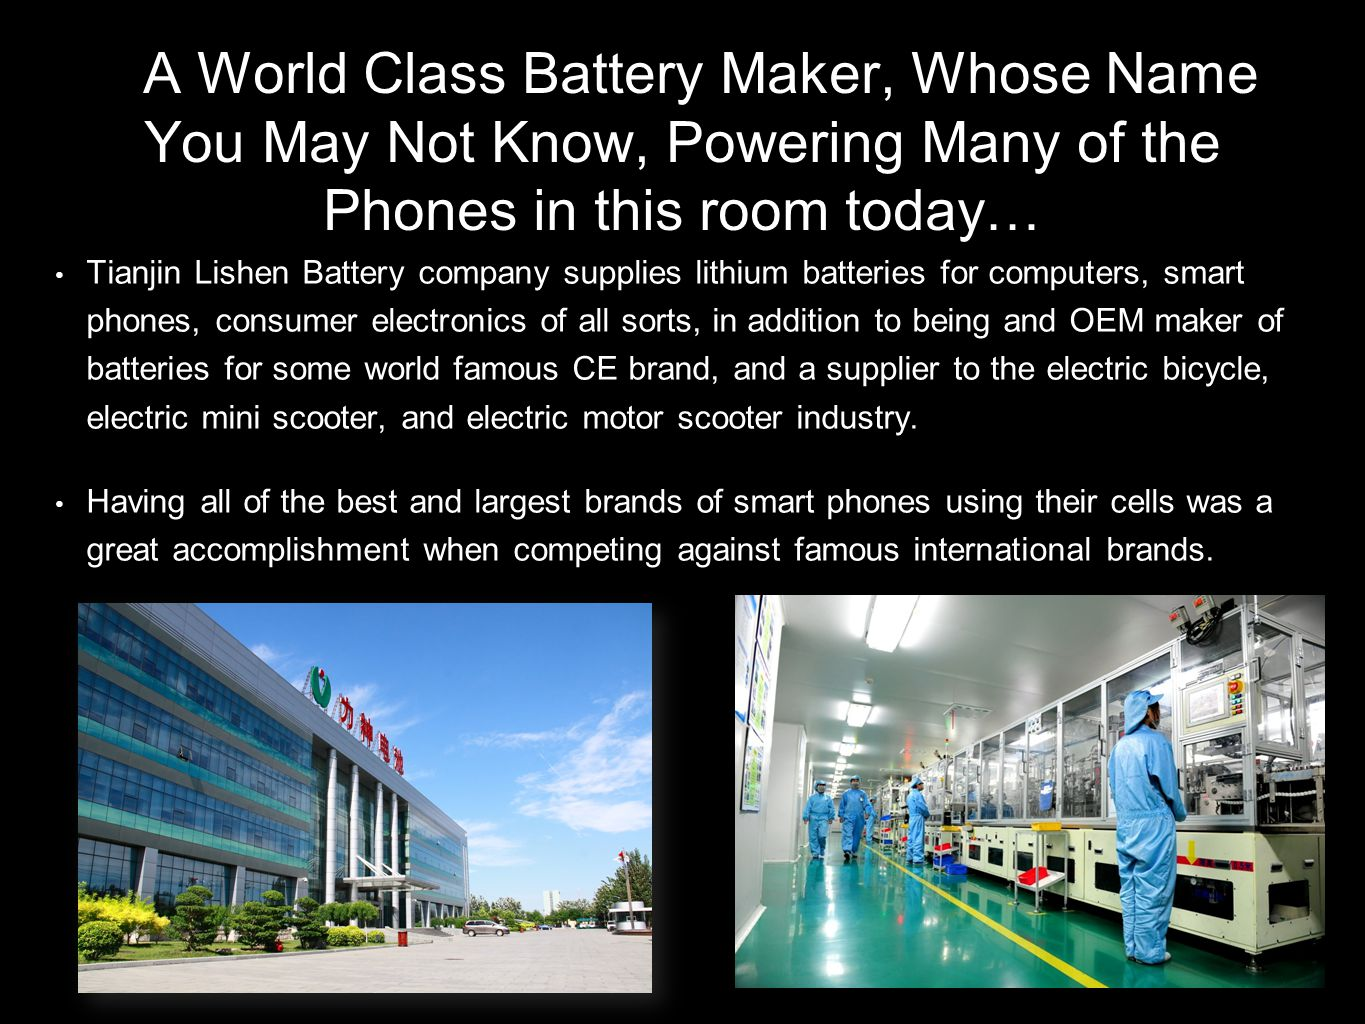 AA World Class Battery Maker, Whose Name You May Not Know, Powering Many of the Phones in this room today… Tianjin Lishen Battery company supplies lit